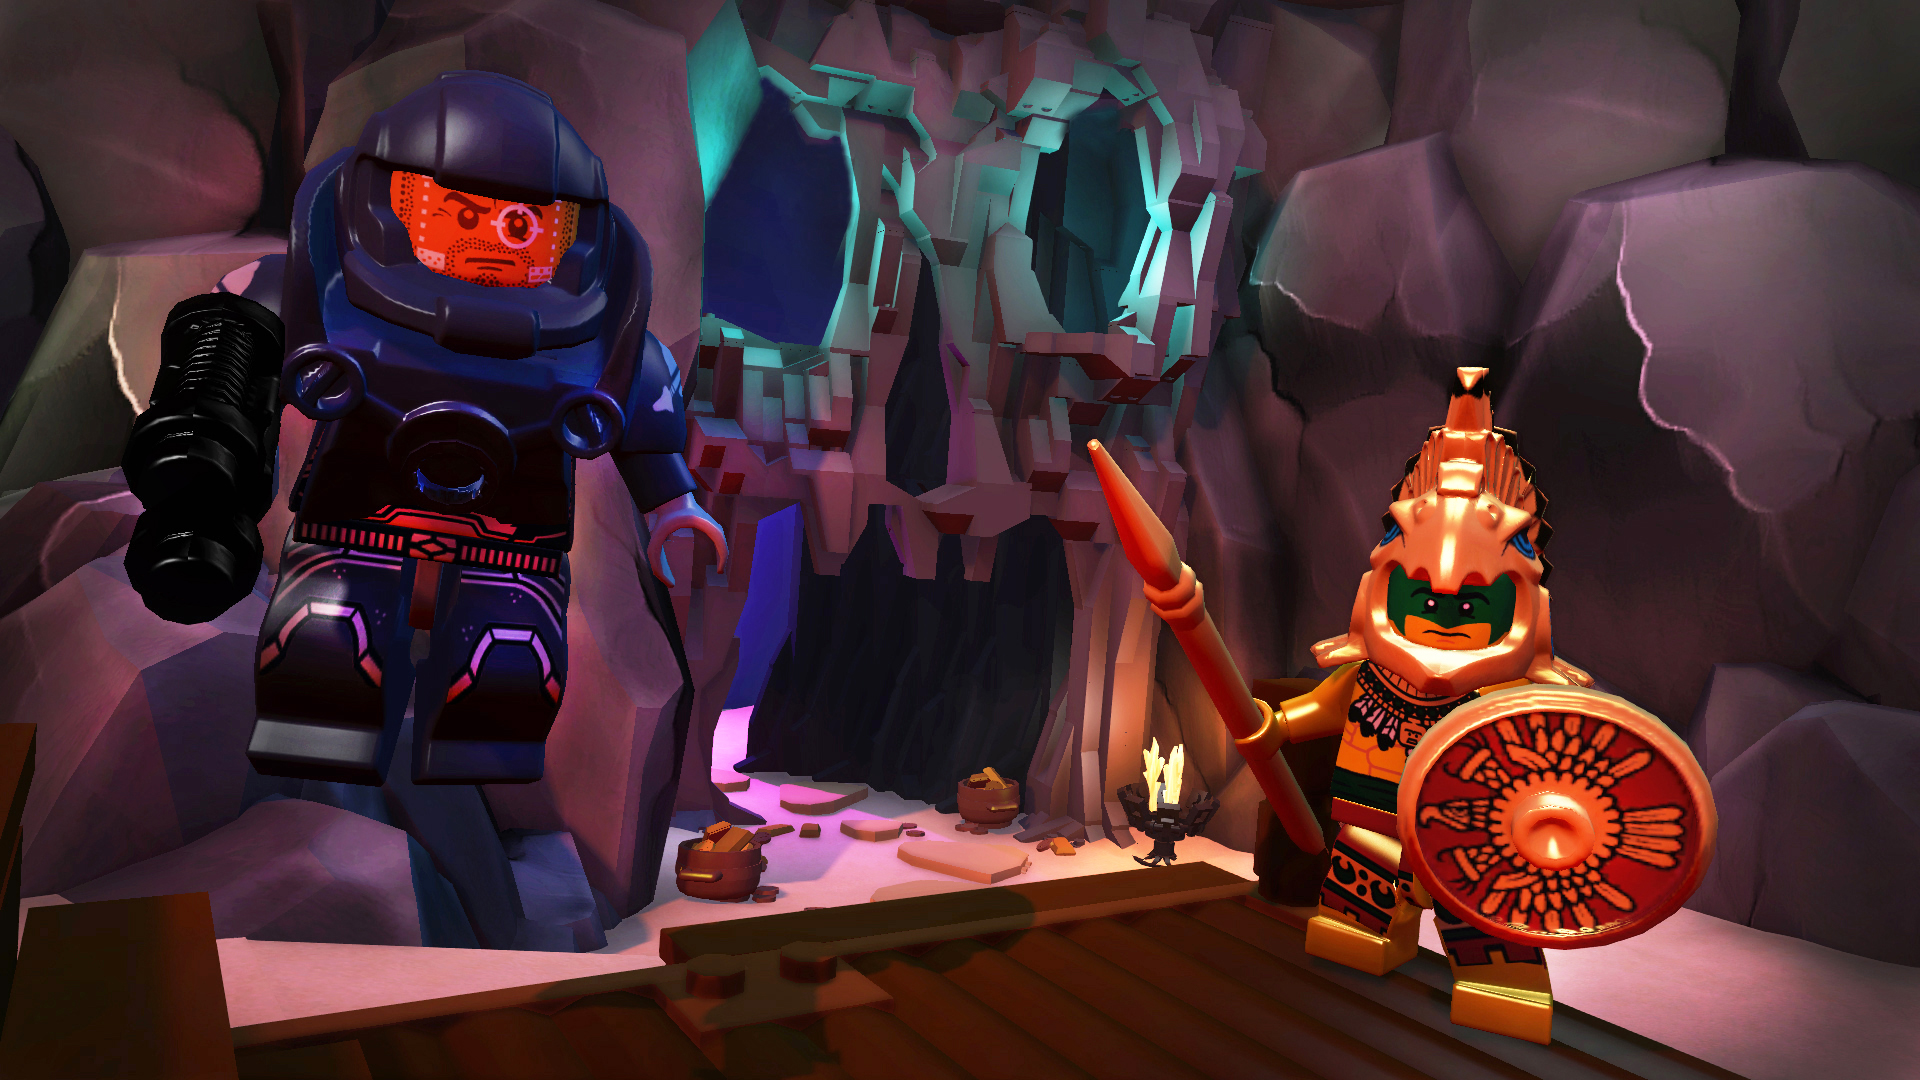 LEGO Minifigures Online revealed, first trailer and screenshots here